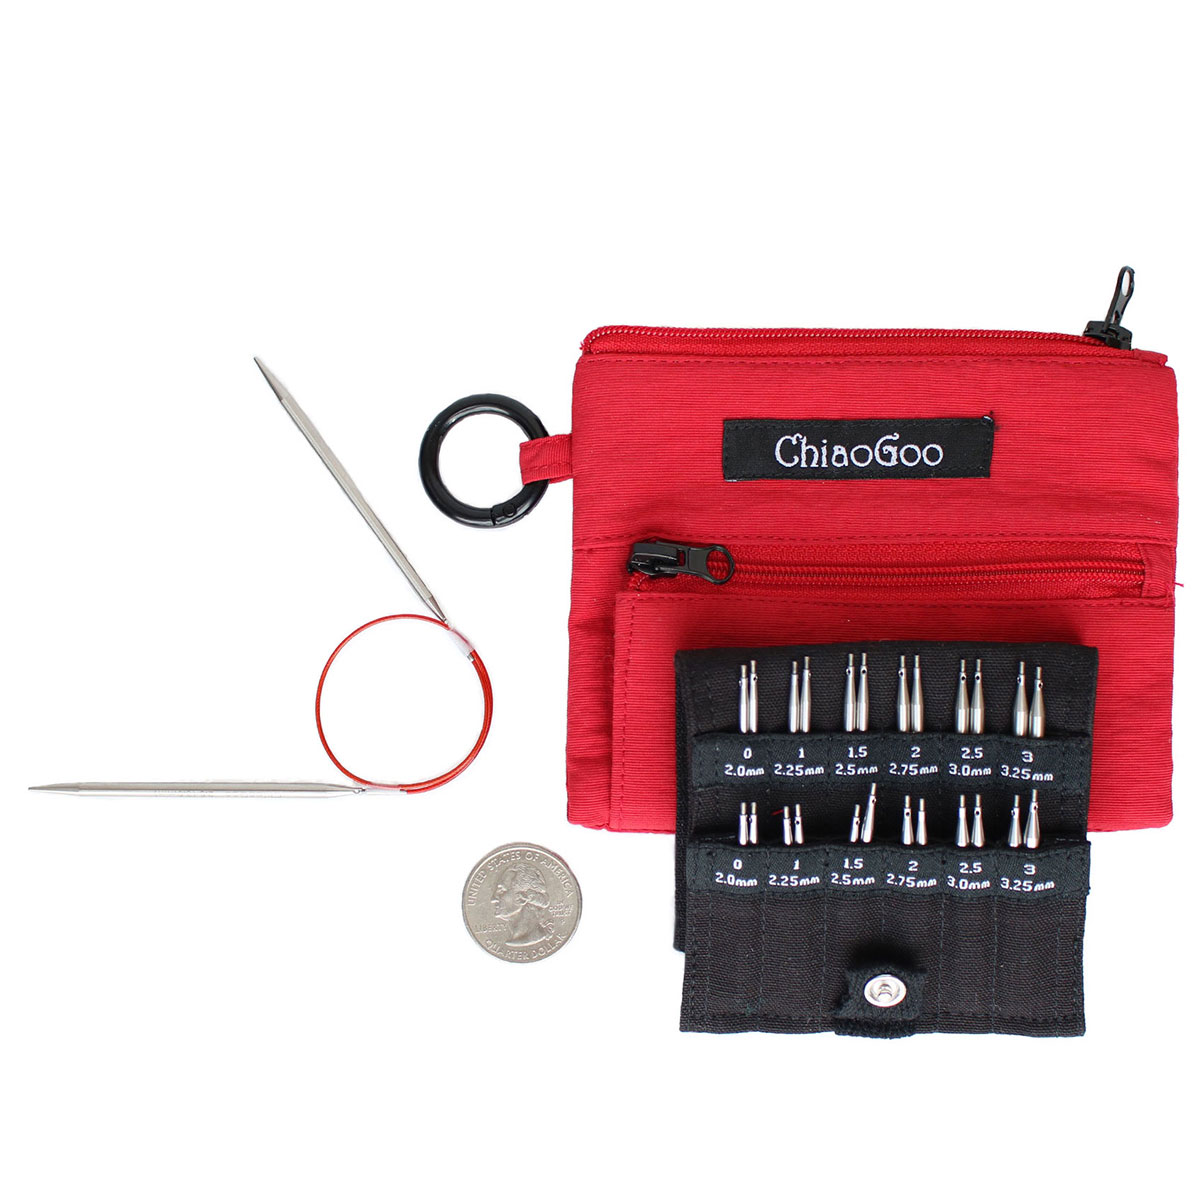 chiaogoo interchangeable needle set